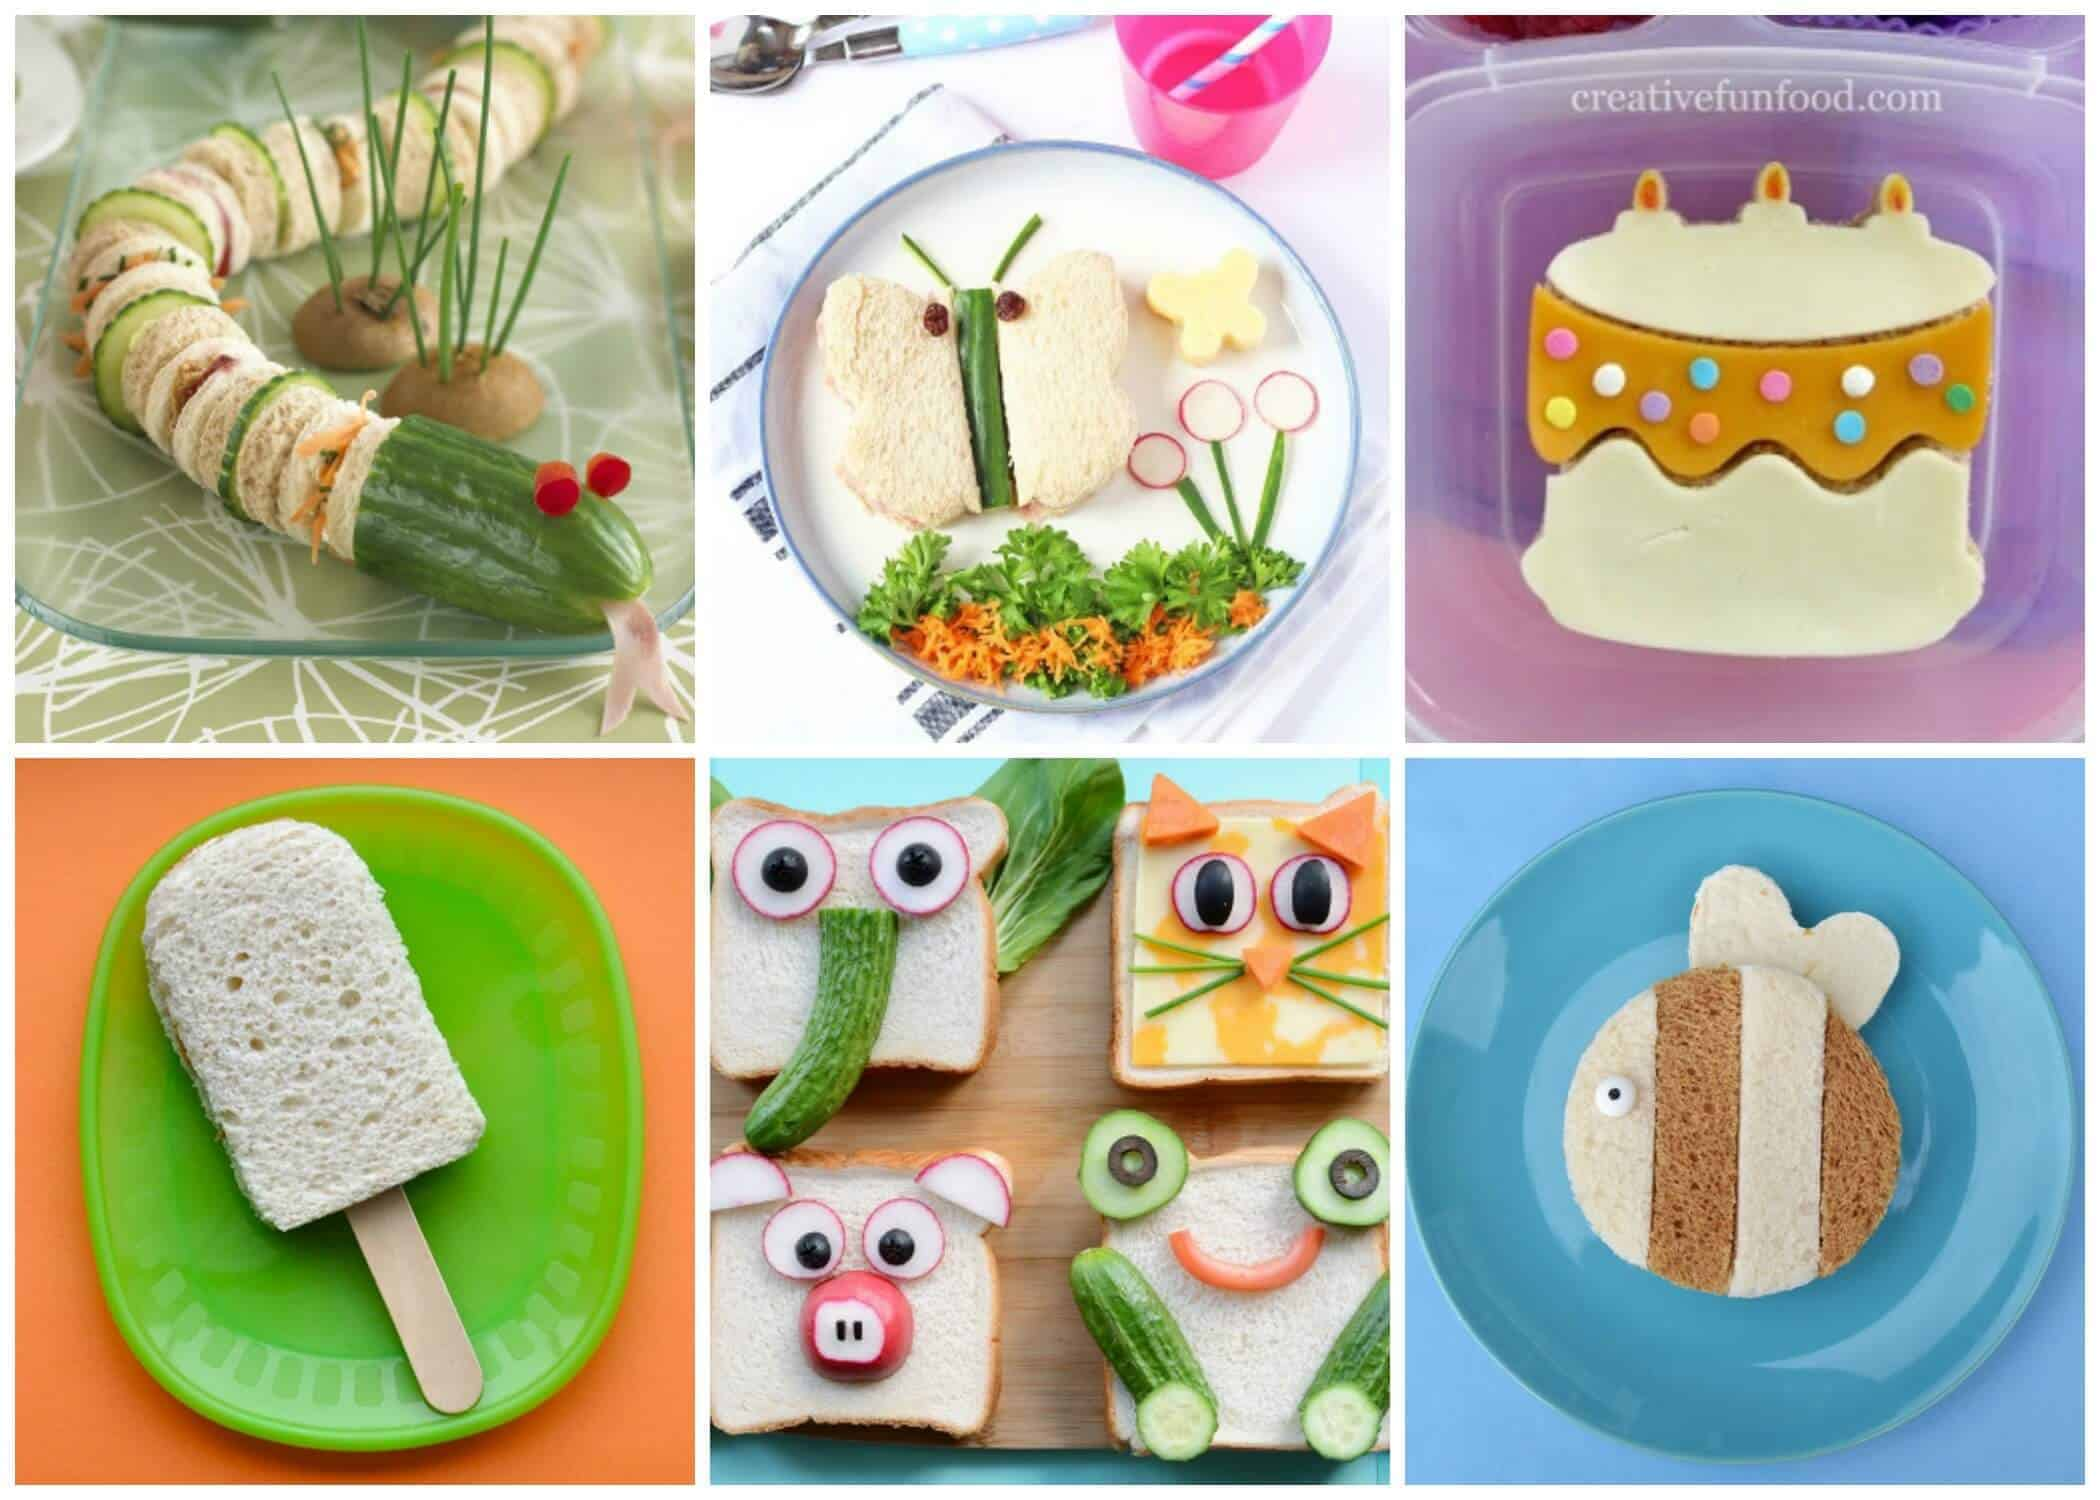 35 fun sandwiches for kids eats amazing for Cool food ideas for kids